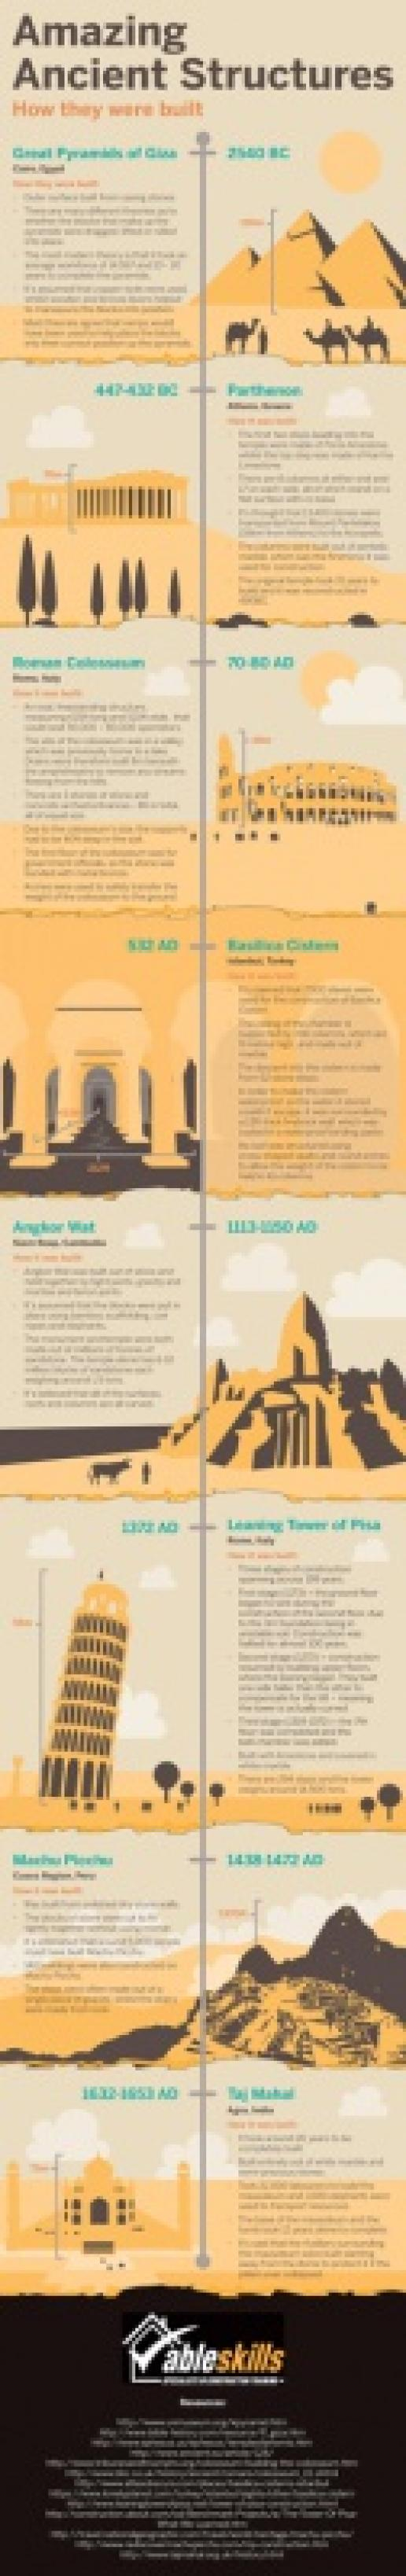 The infographic from Able Skills might spark the first interest among youngsters who go on to become stonemasons.